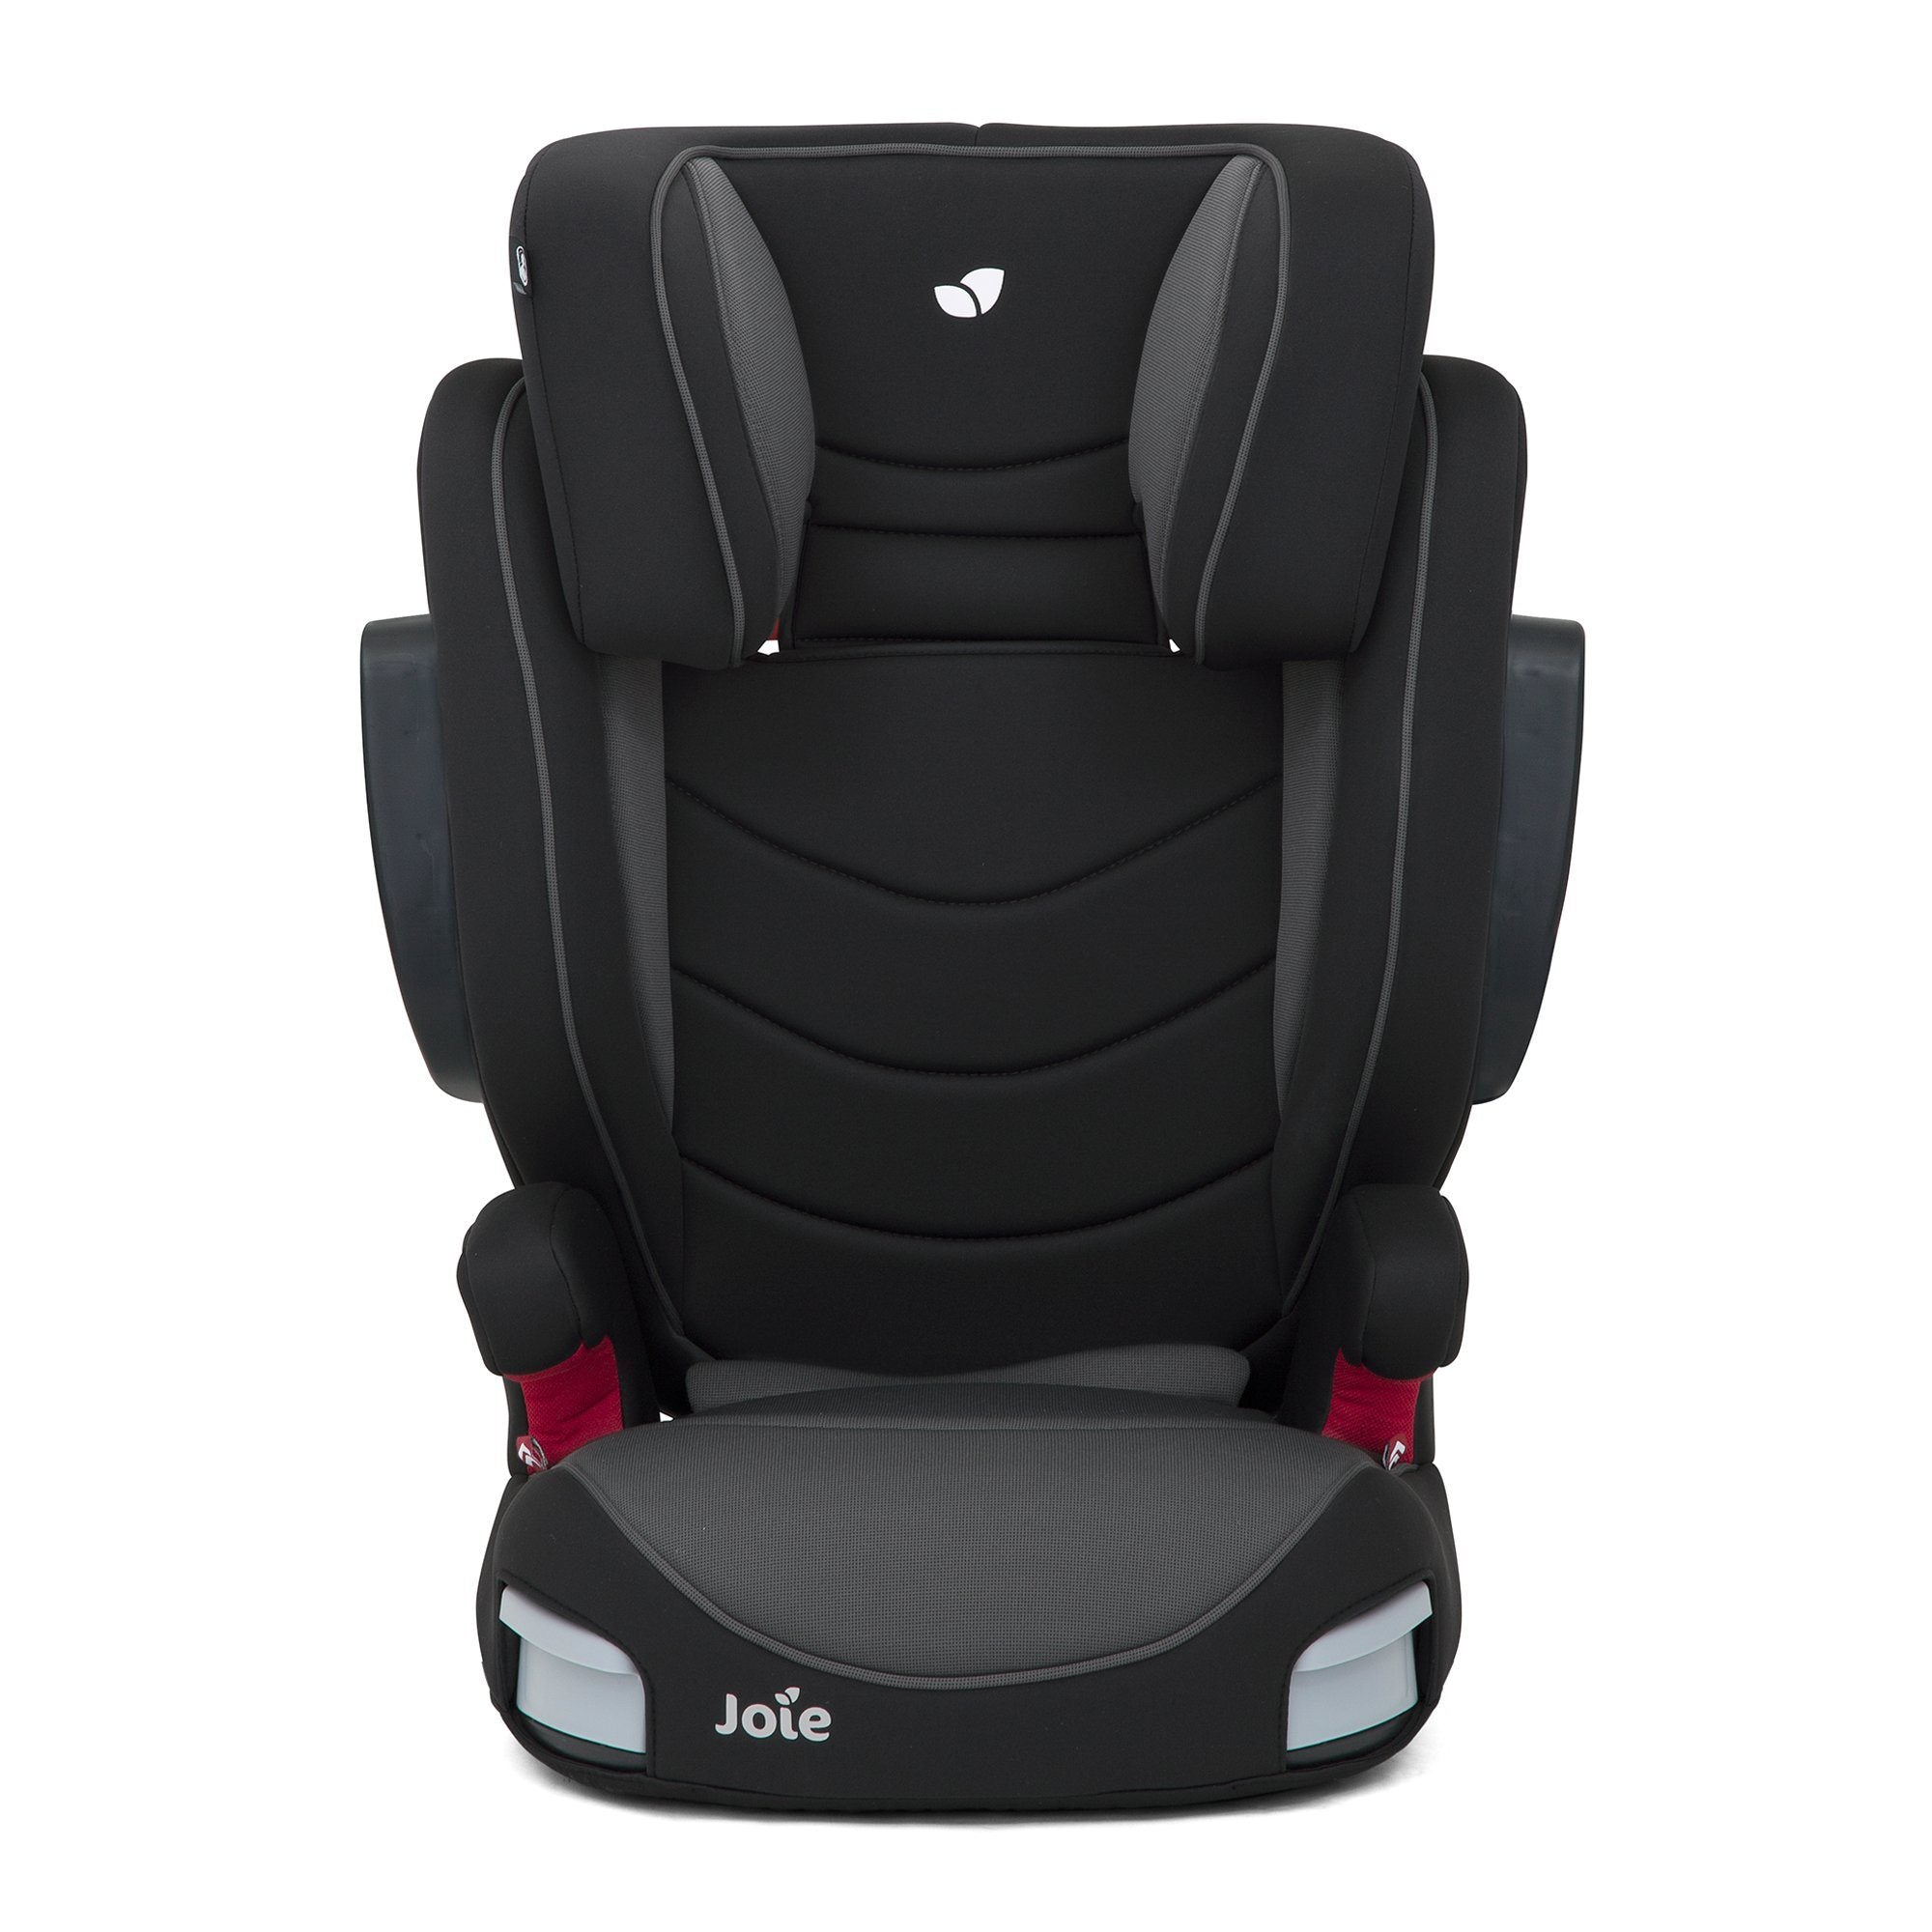 Joie Trillo LX high-back booster - Ember (black) - Pushchair Expert